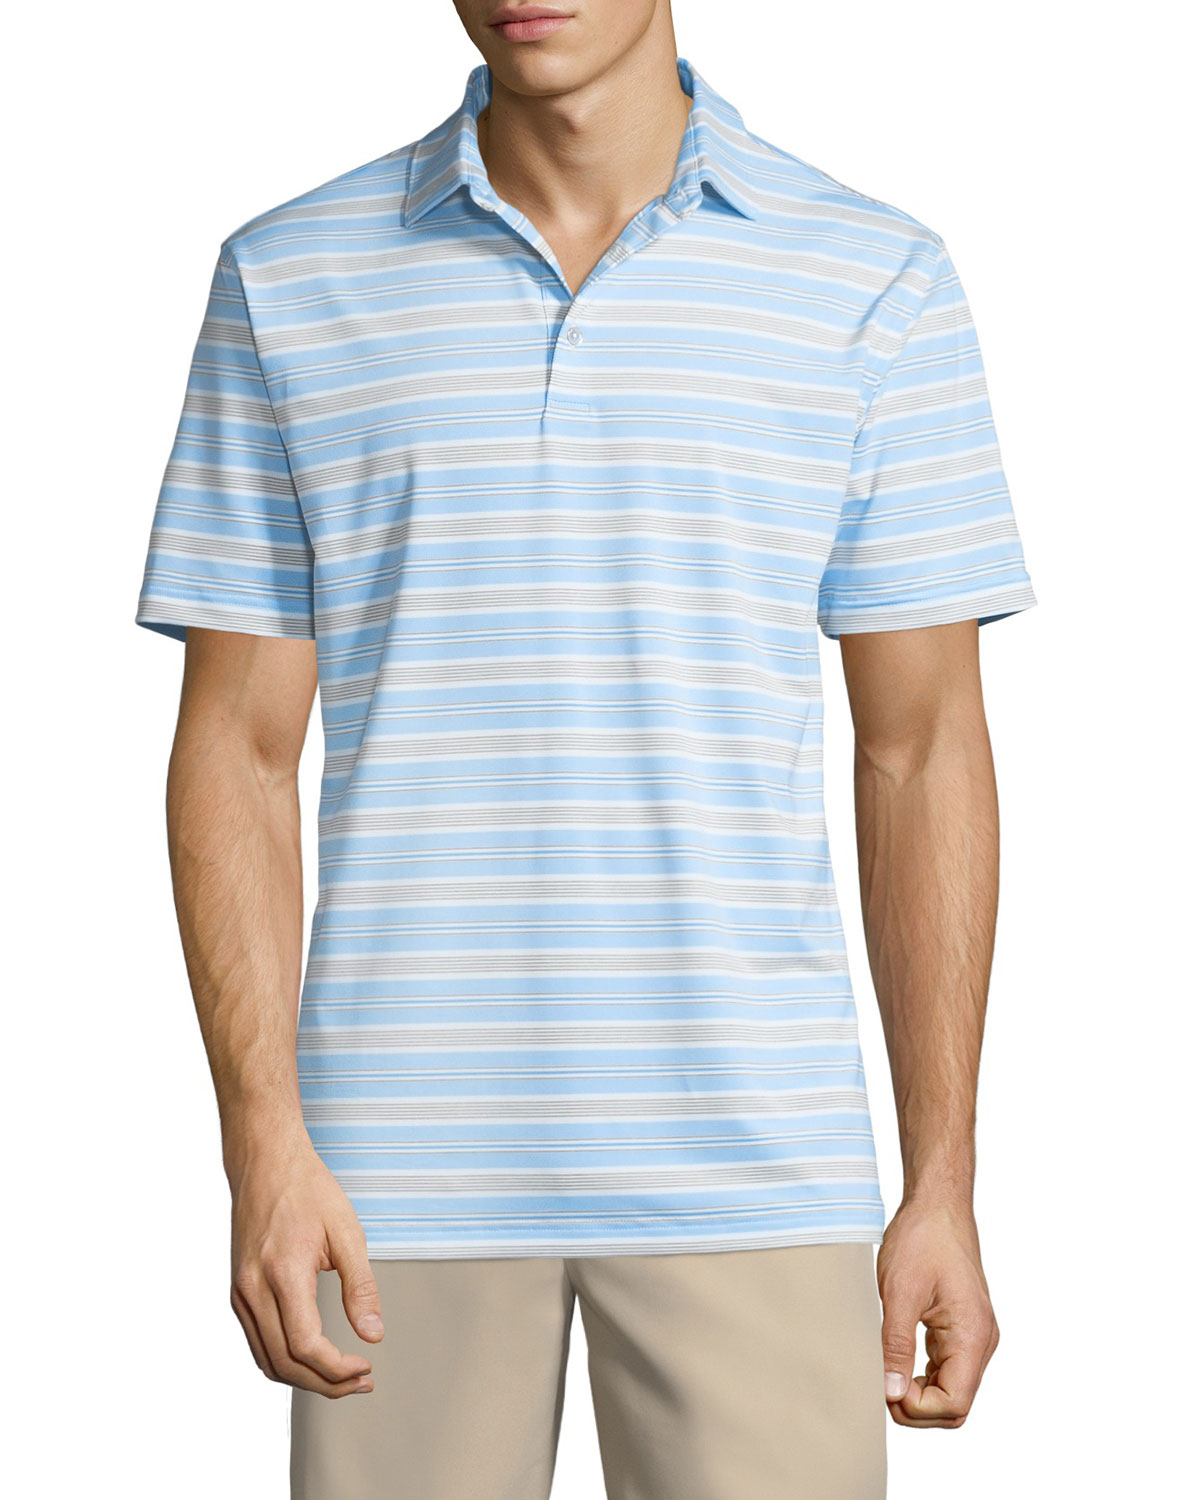 Men's Windel Stripe Jersey Polo Shirt